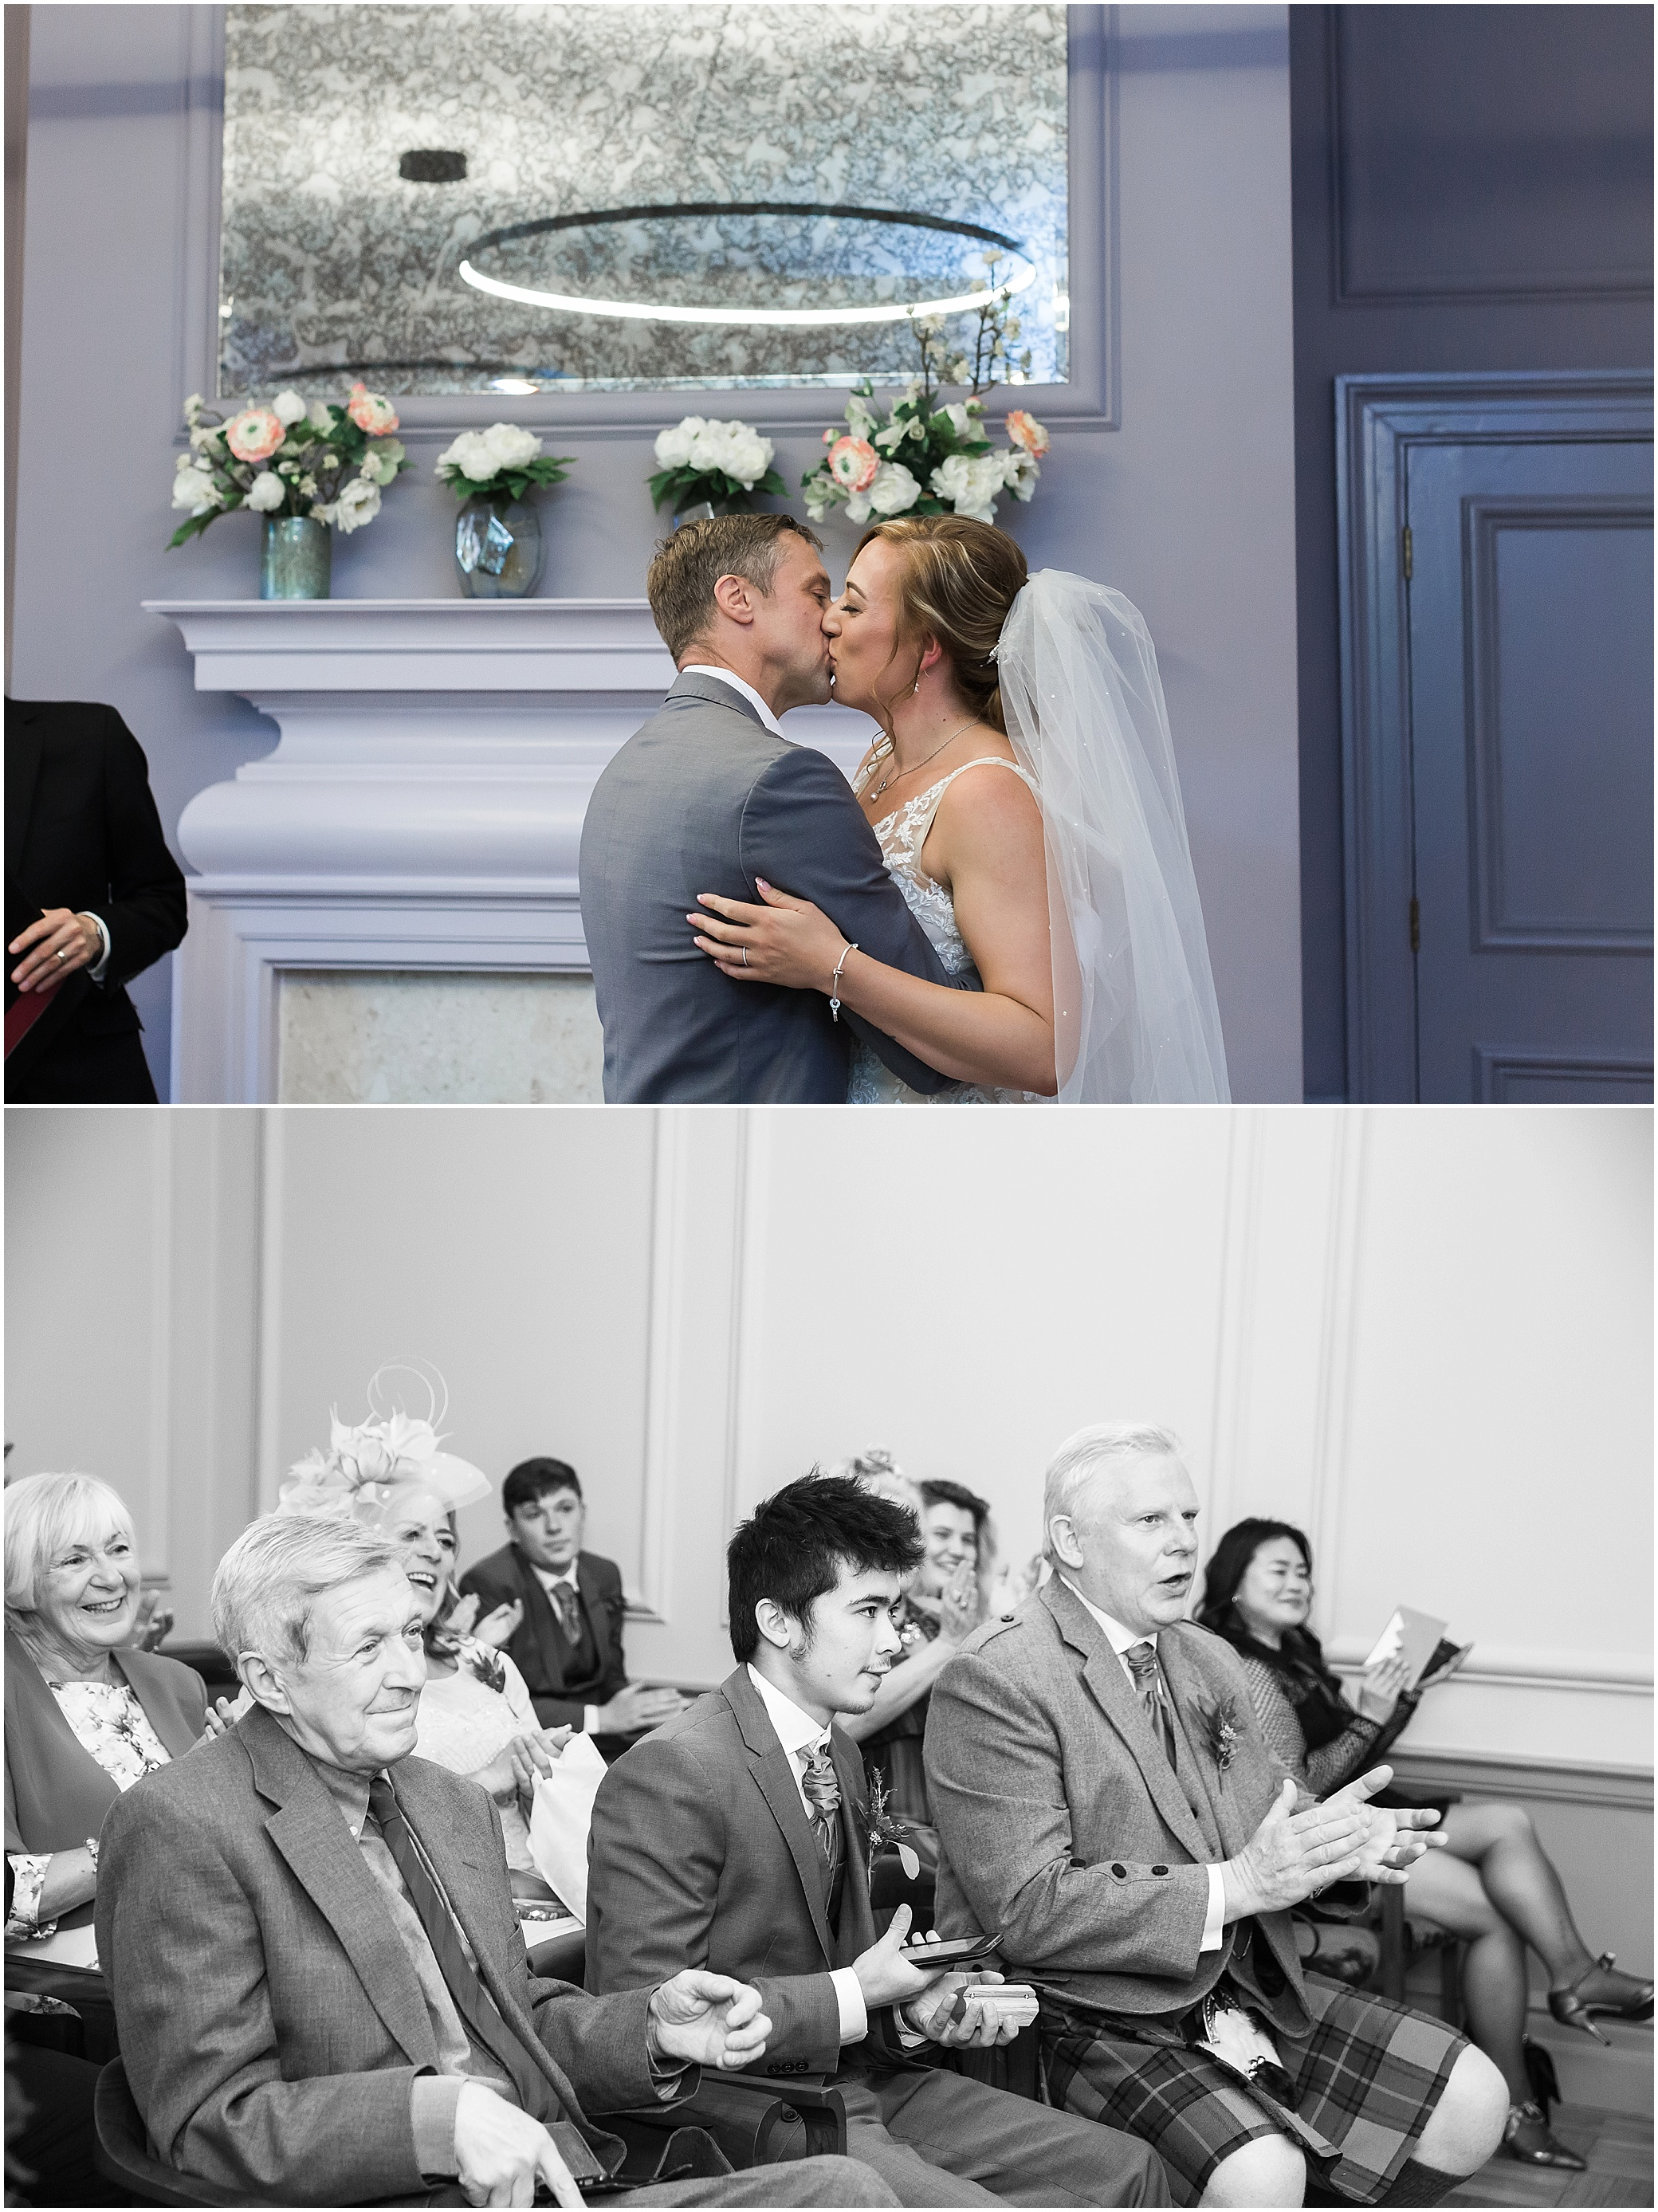 Couple getting married at their wedding in the Knightsbridge room at Marylebone town hall in London